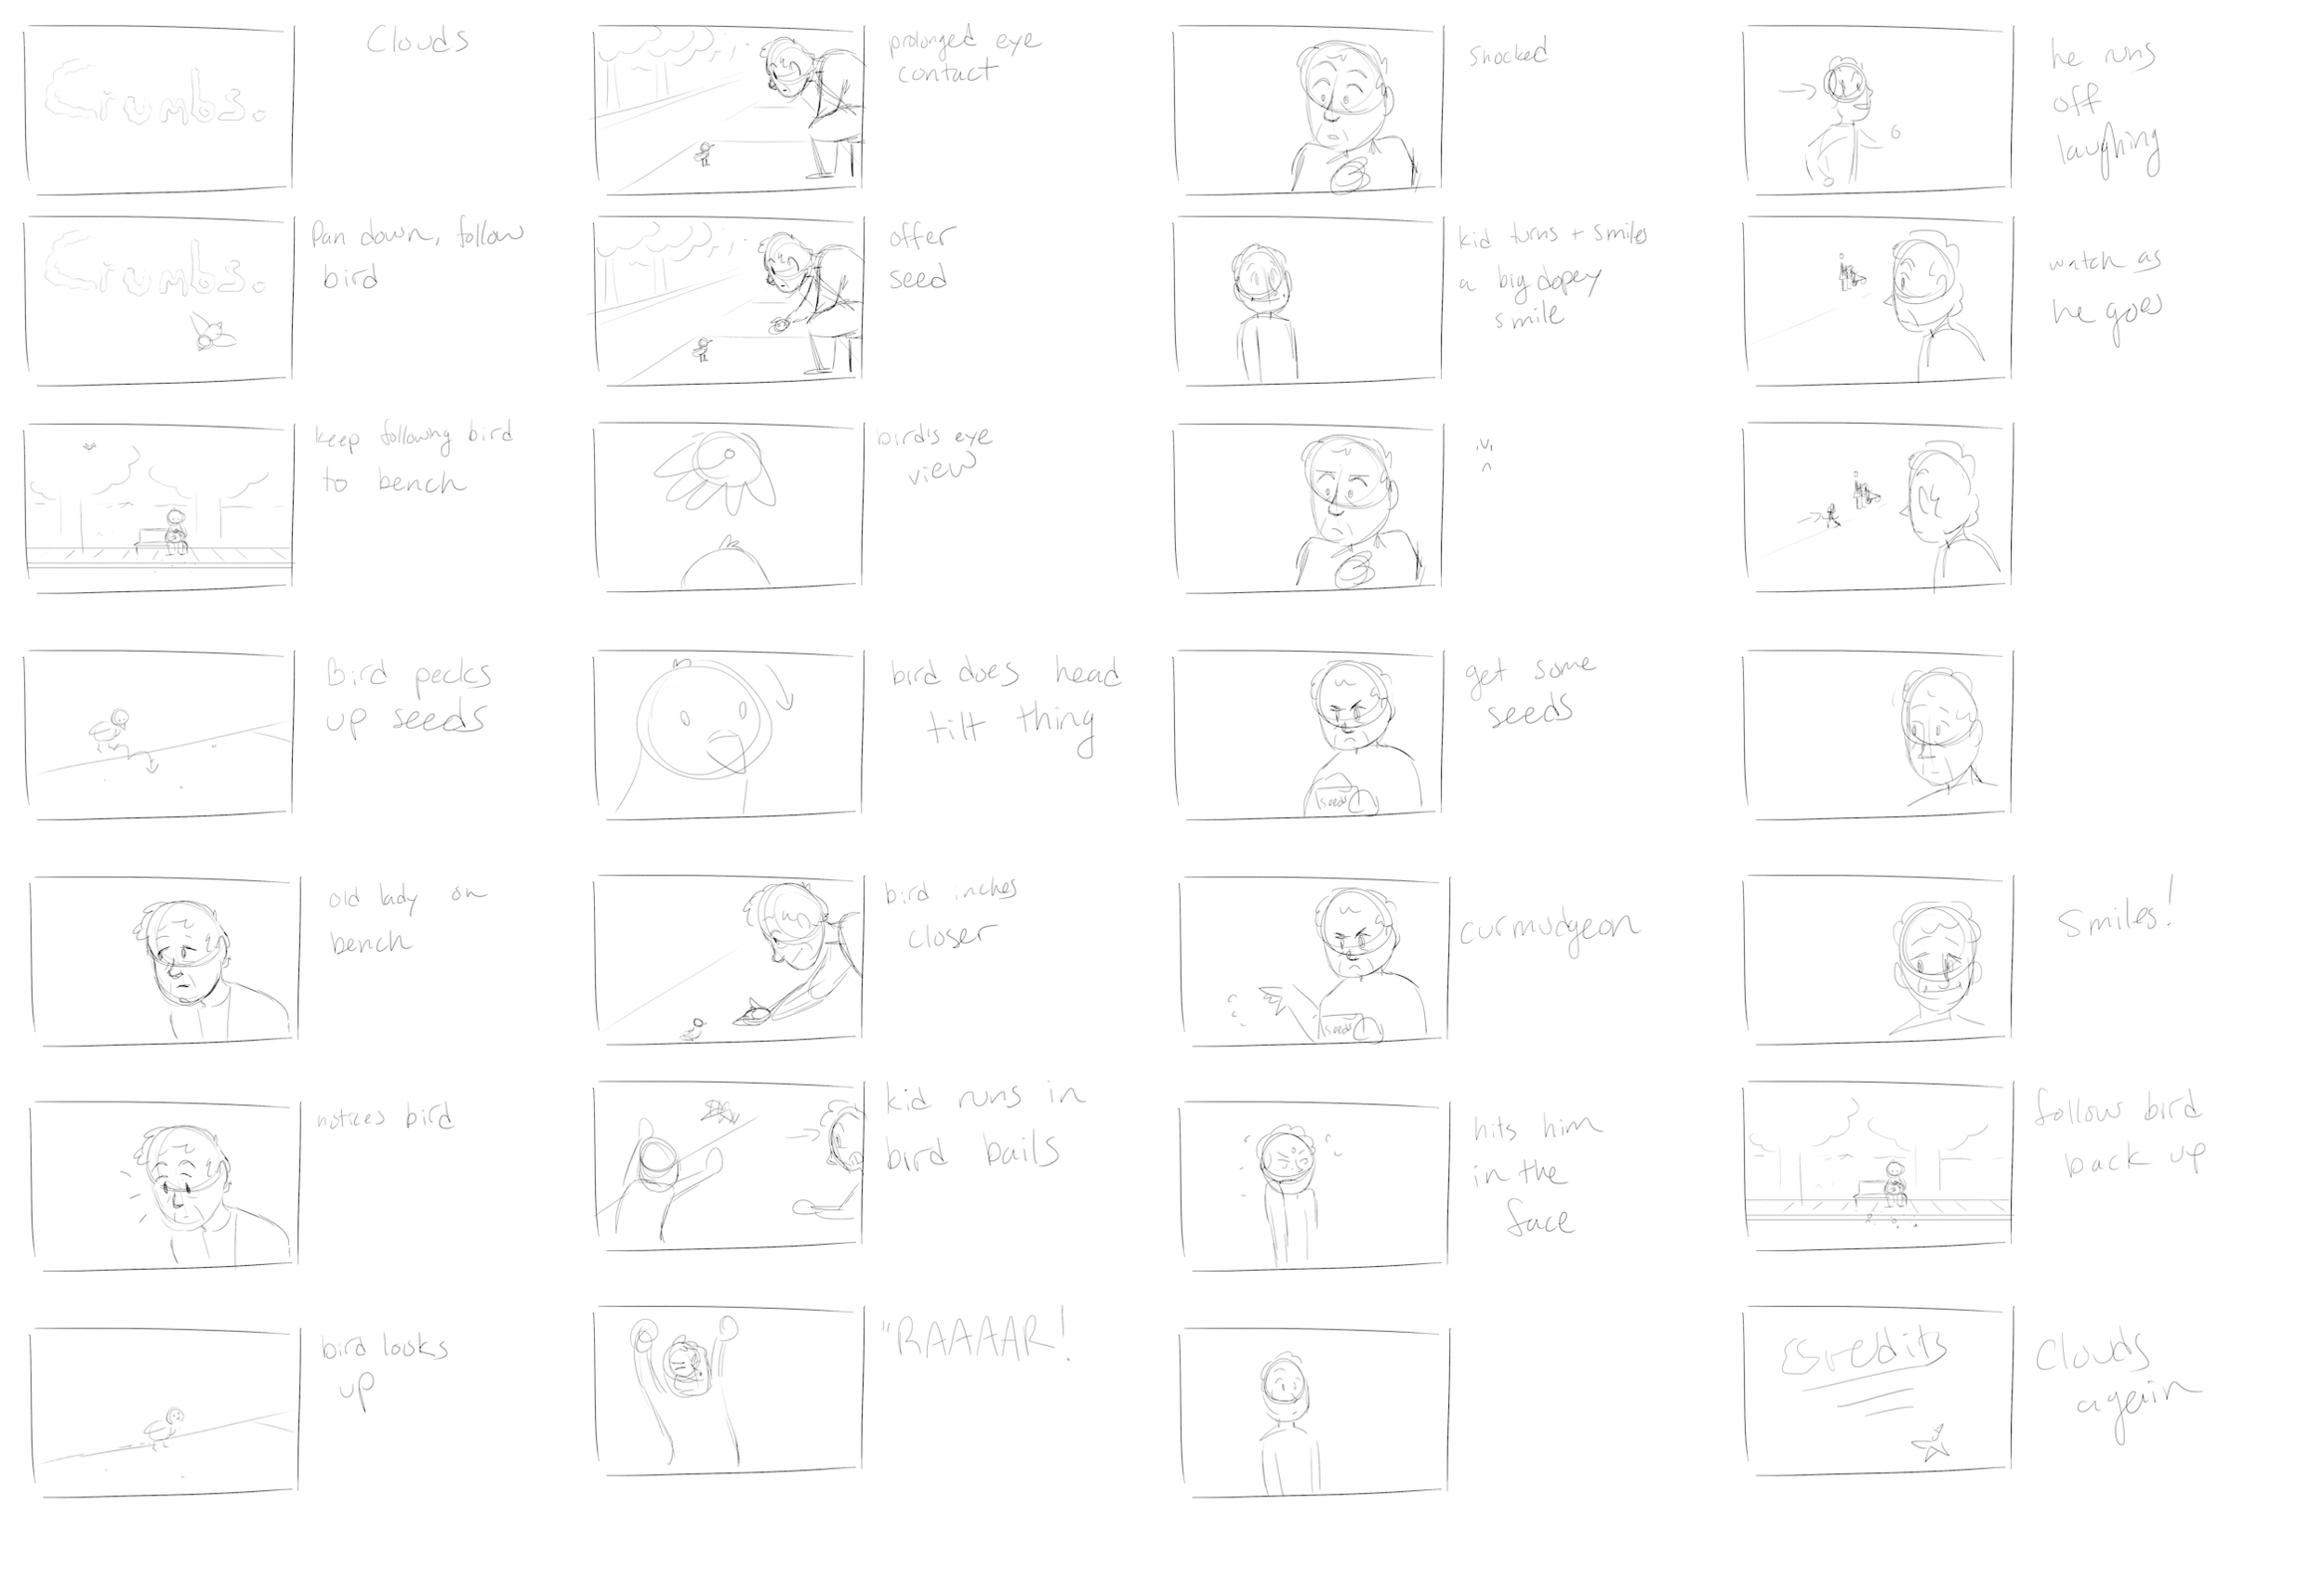 A simple storyboard.